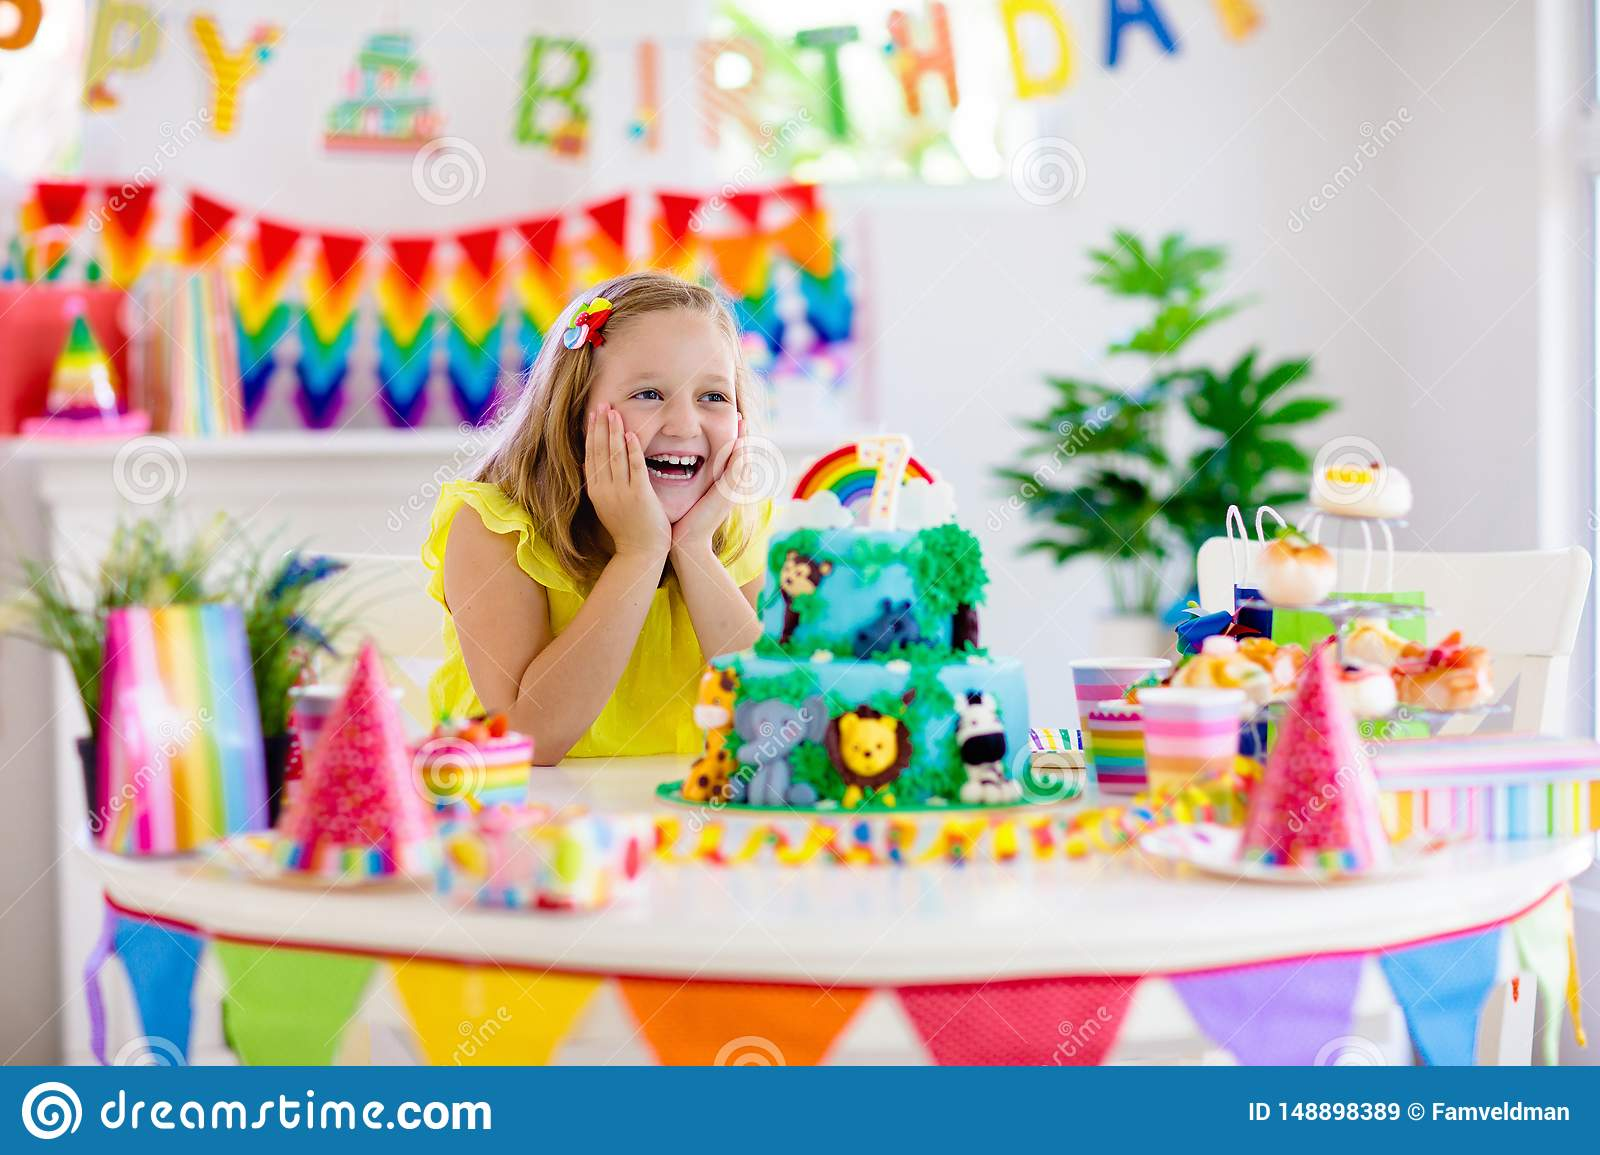 Swell Child Birthday Party Kids Blow Candle On Cake Stock Image Image Birthday Cards Printable Giouspongecafe Filternl